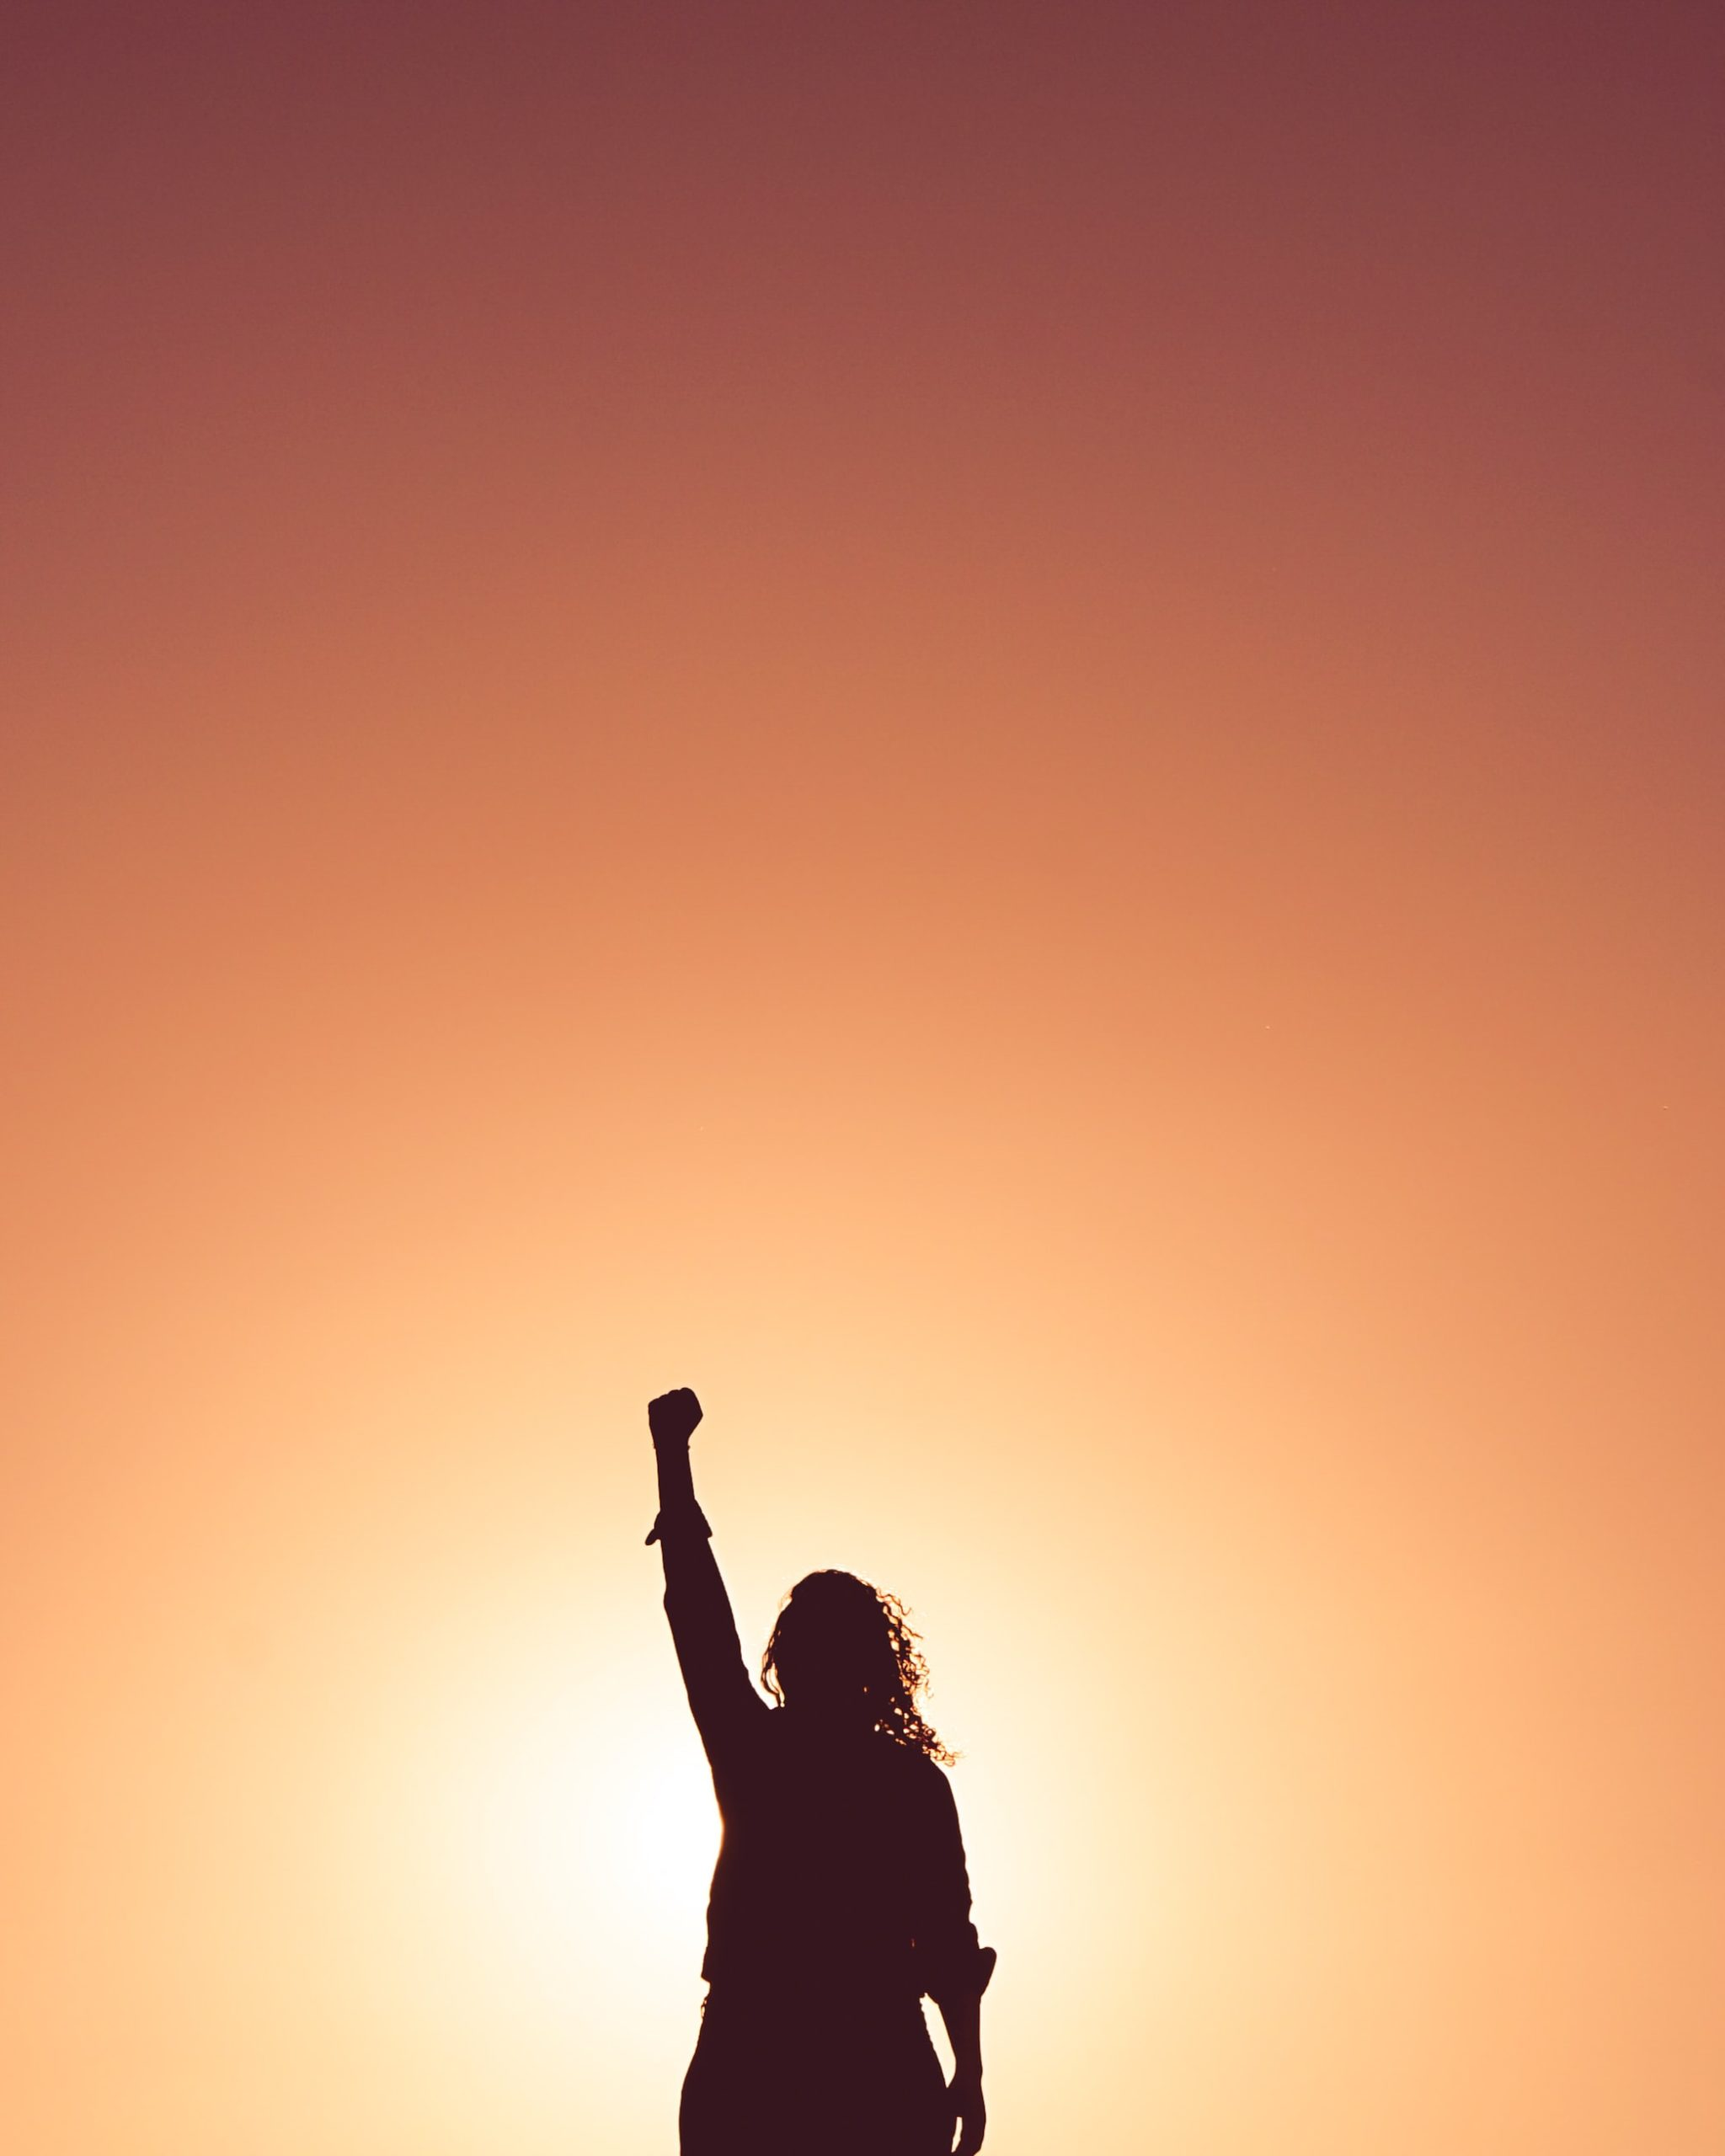 A sillhouette with her arm raised in victory after discovering the signs of anxiety and depression and starting therapy as a result.